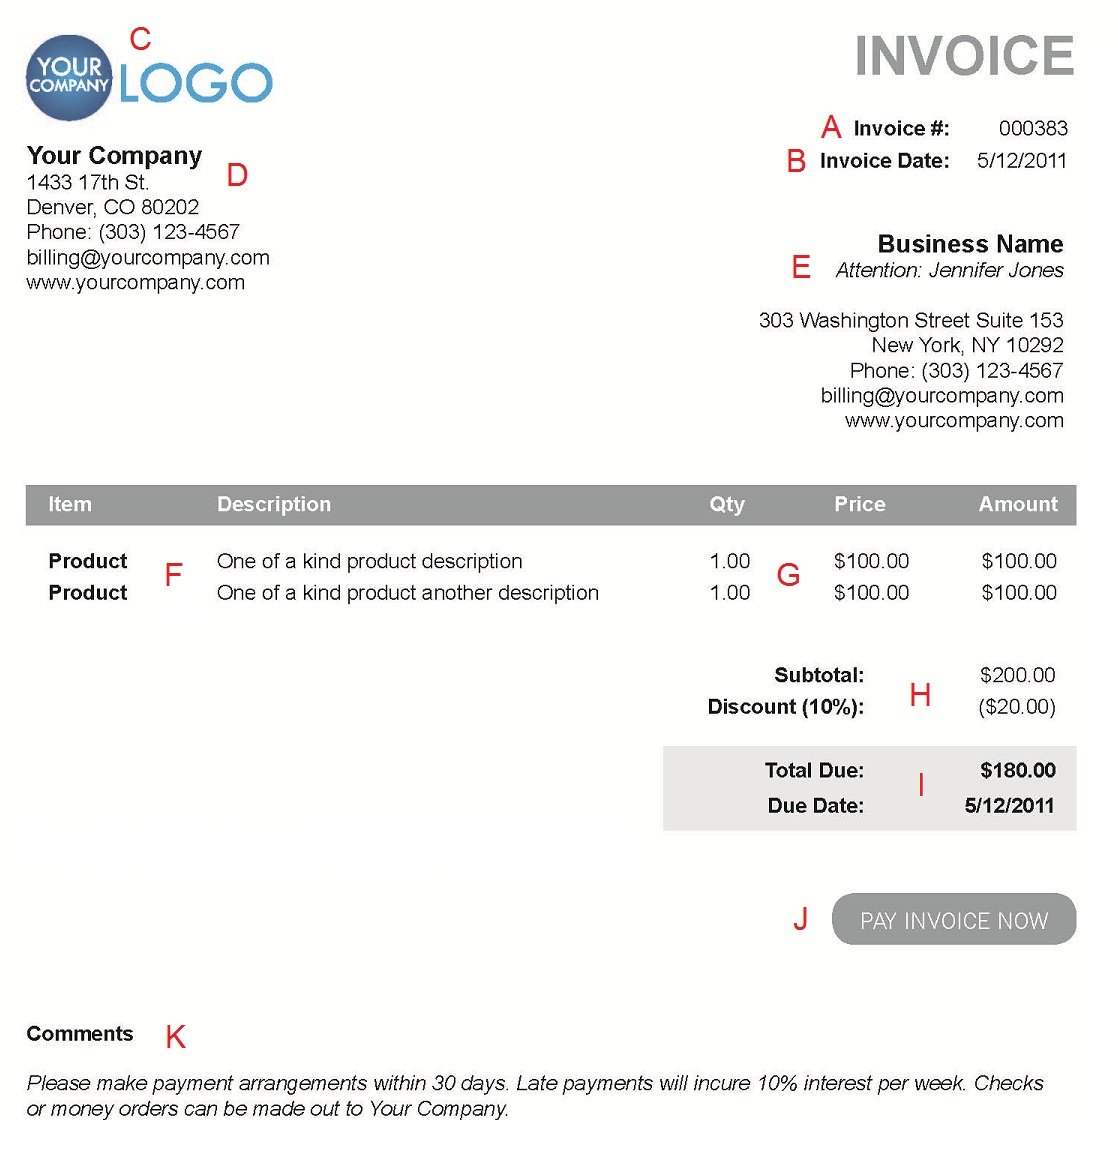 Opposenewapstandardsus  Winning The  Different Sections Of An Electronic Payment Invoice With Foxy A  With Appealing View And Pay Invoice Also How To Do Invoices In Addition How To Invoice Someone And How To Create Invoice As Well As Quick Invoice Additionally Invoice Books From Paysimplecom With Opposenewapstandardsus  Foxy The  Different Sections Of An Electronic Payment Invoice With Appealing A  And Winning View And Pay Invoice Also How To Do Invoices In Addition How To Invoice Someone From Paysimplecom